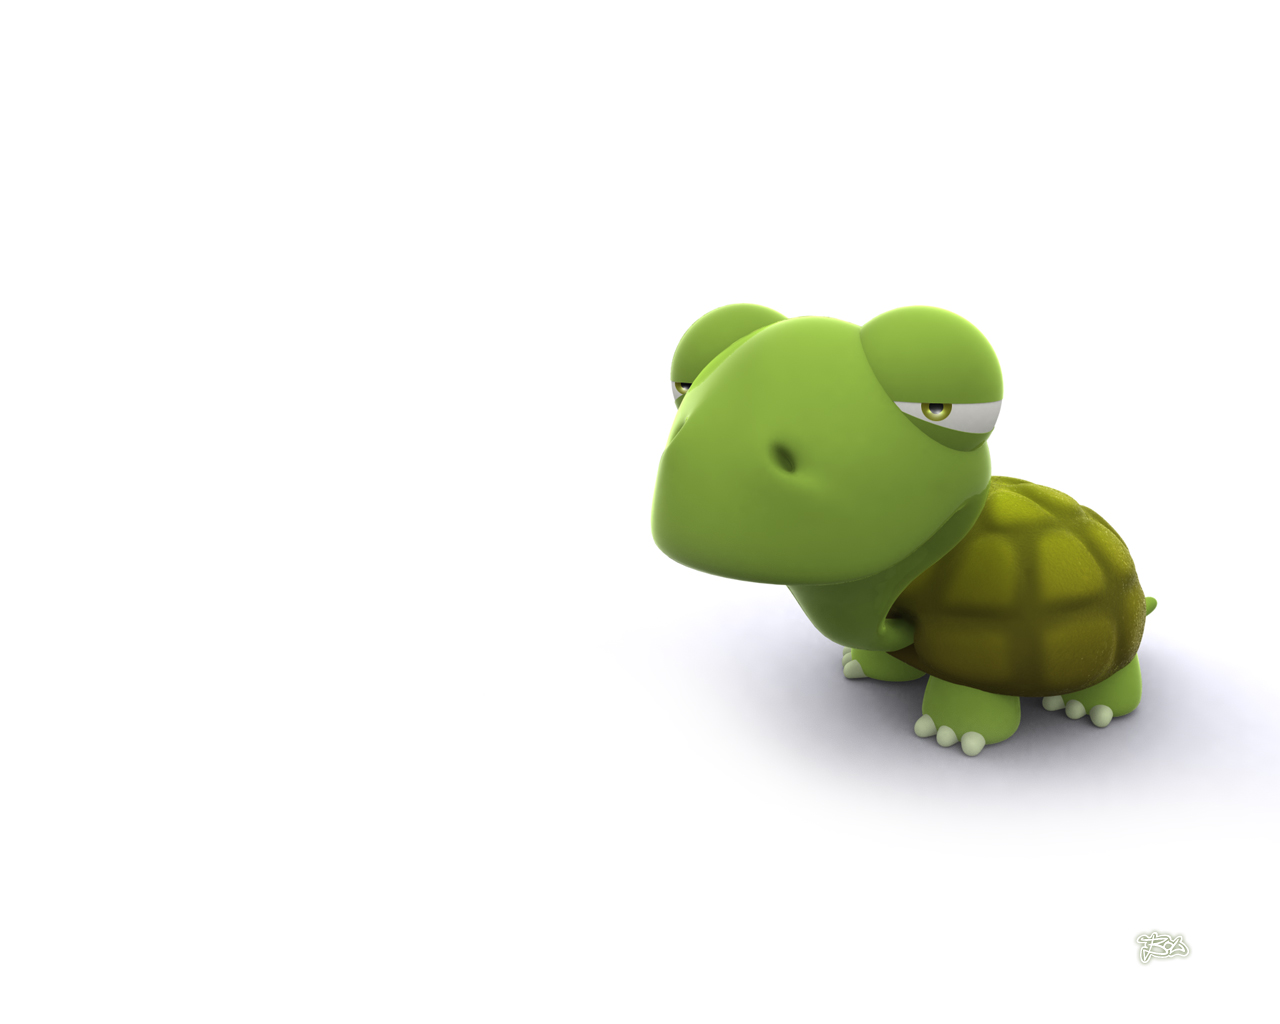 Funny 3d Animal Turtle Wallpapers Hd: IWallpapers: CARTOON 3D WALLPAPERS